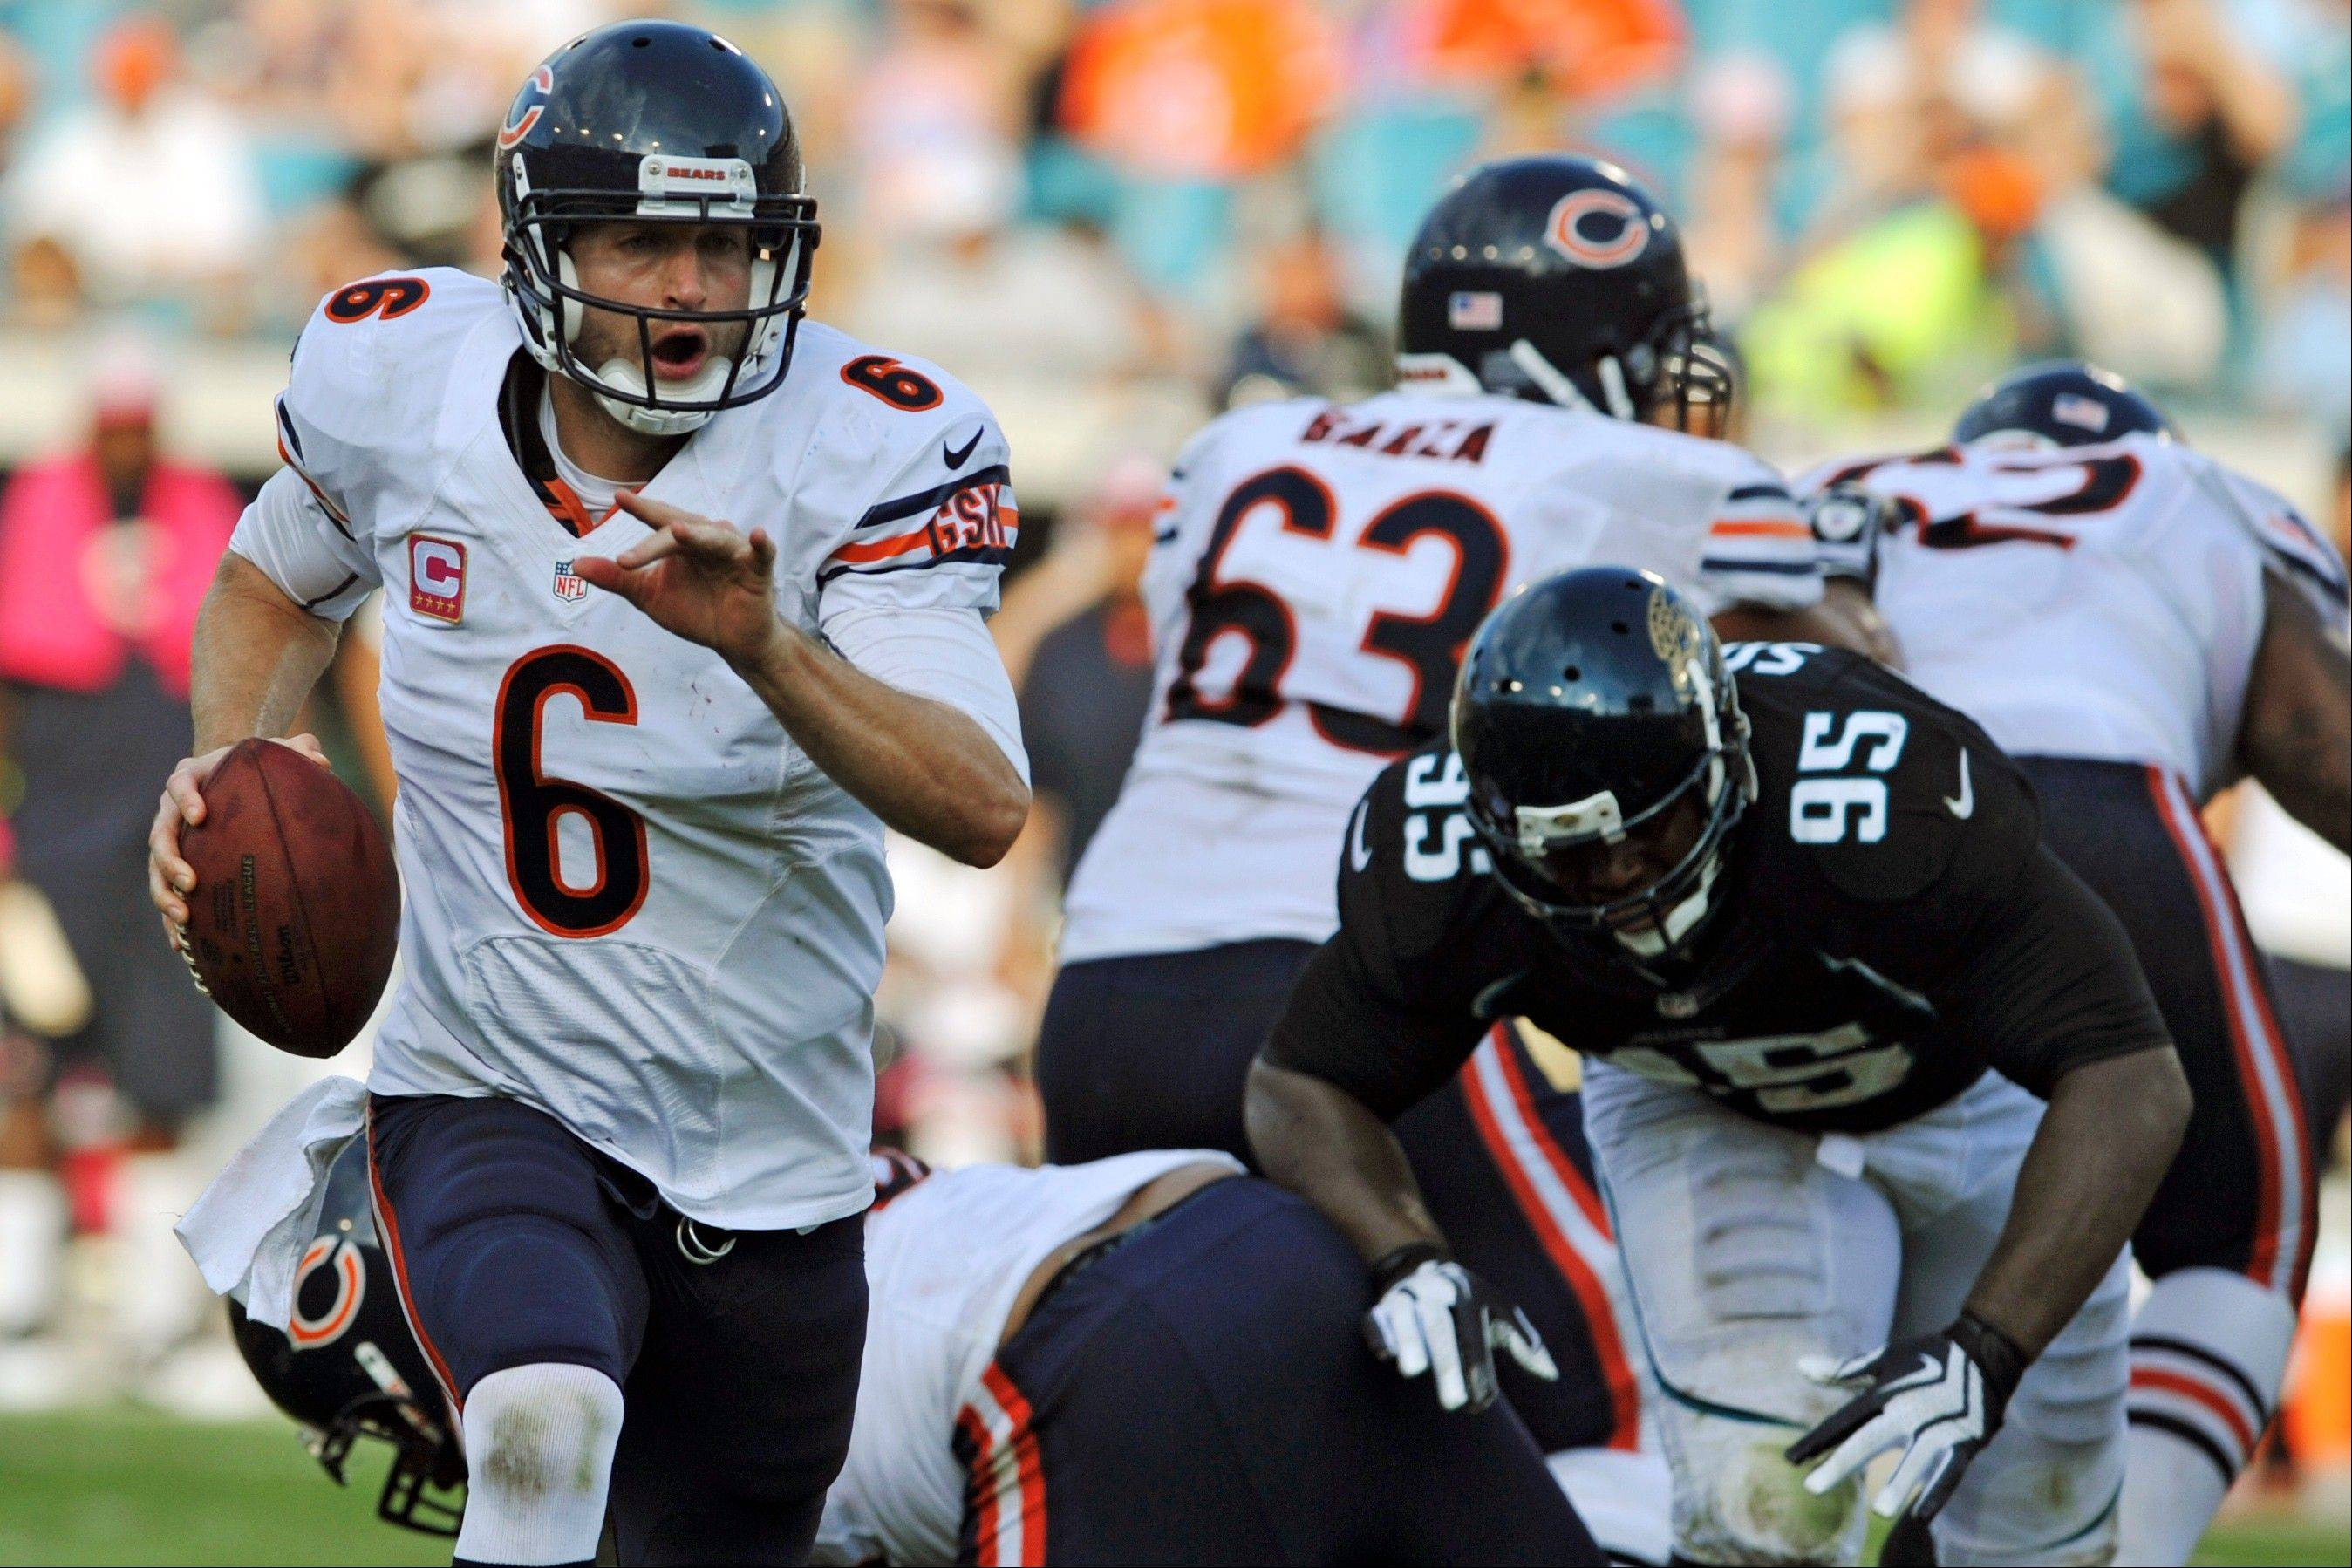 Jay Cutler (6) runs from the pocket as he is pressured by Jacksonville Jaguars defensive tackle D�Anthony Smith (95) during the second half of an NFL football game, Sunday, Oct. 7, 2012, in Jacksonville, Fla. The Bears won 41-3.